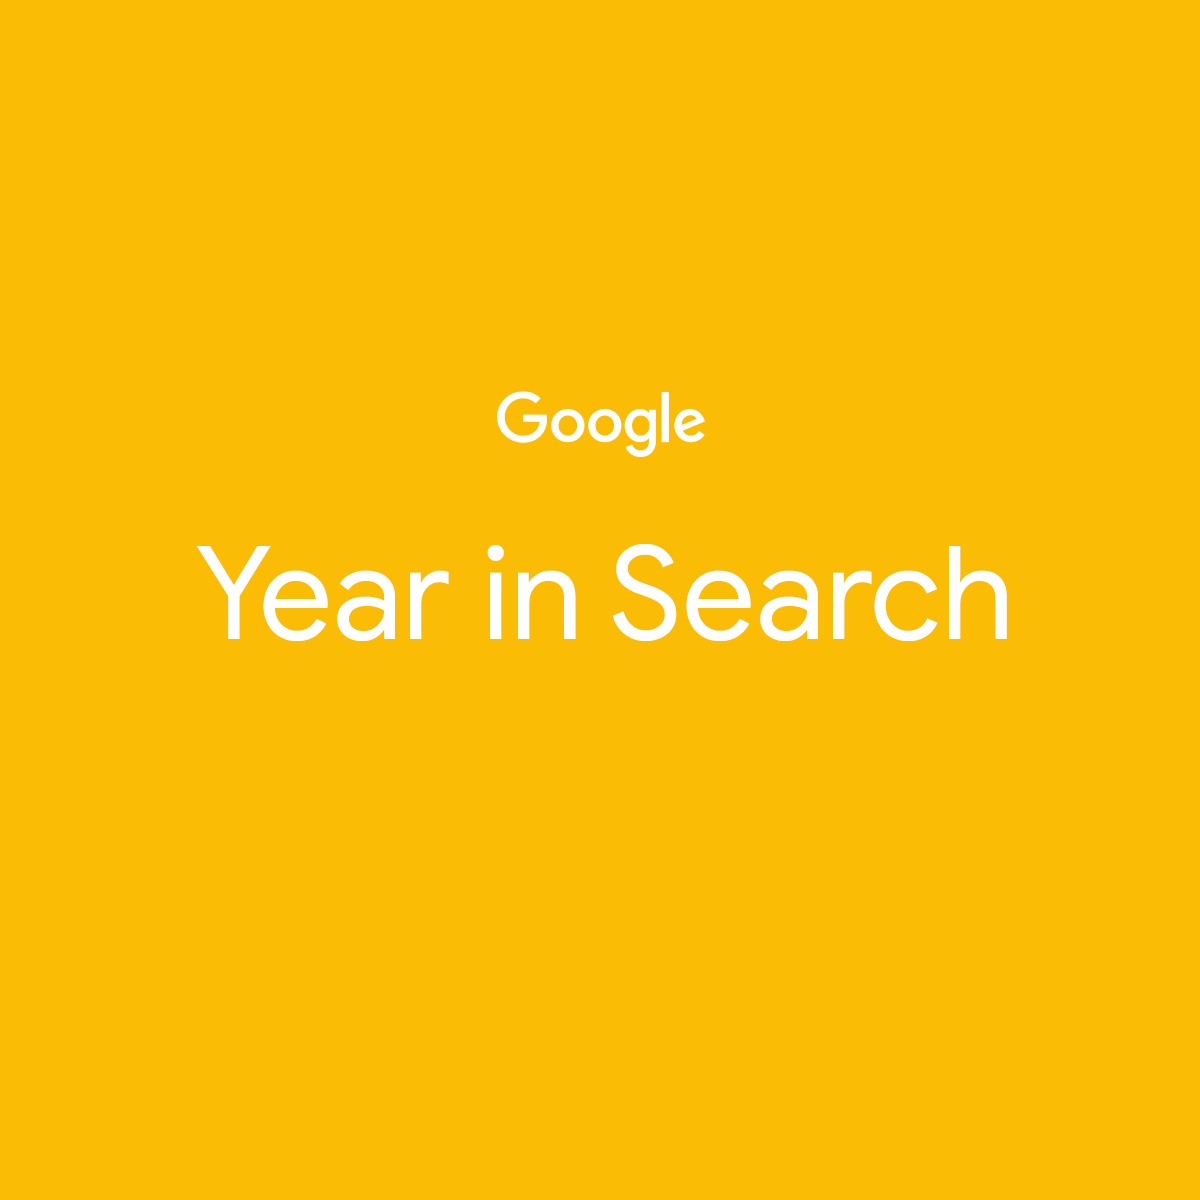 Google Year 2019 in Search